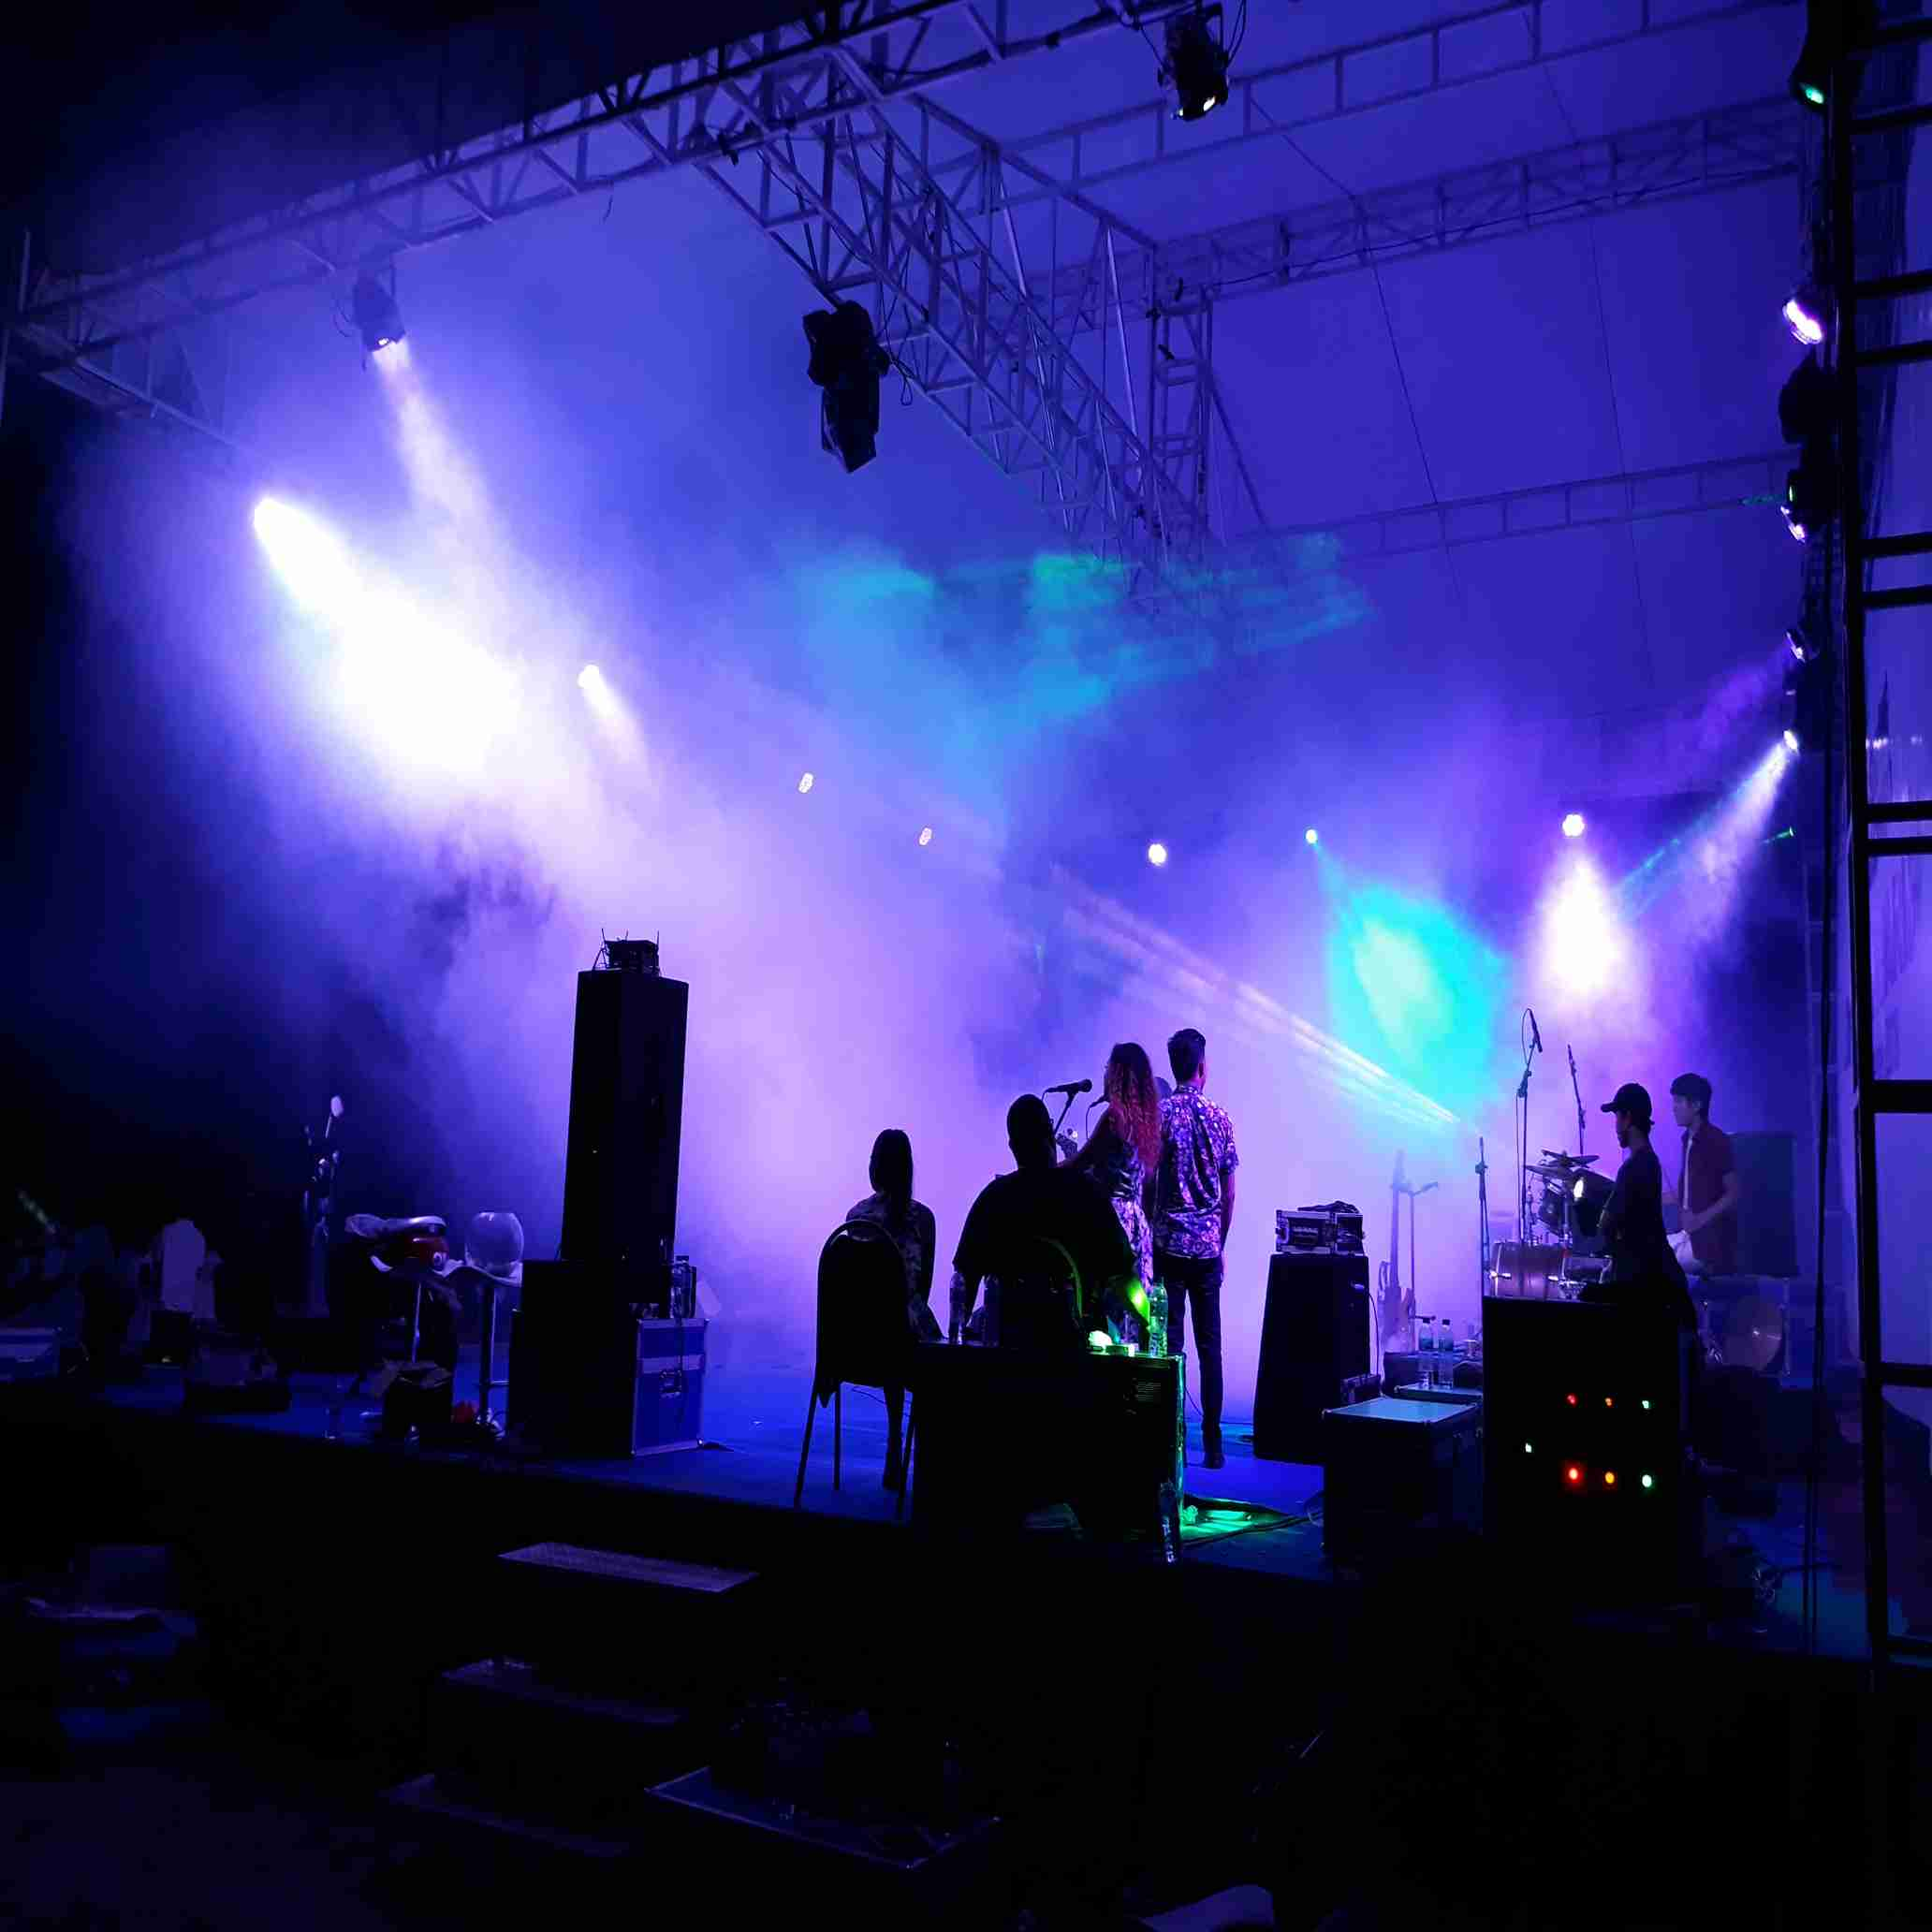 rental lighting , sound system,